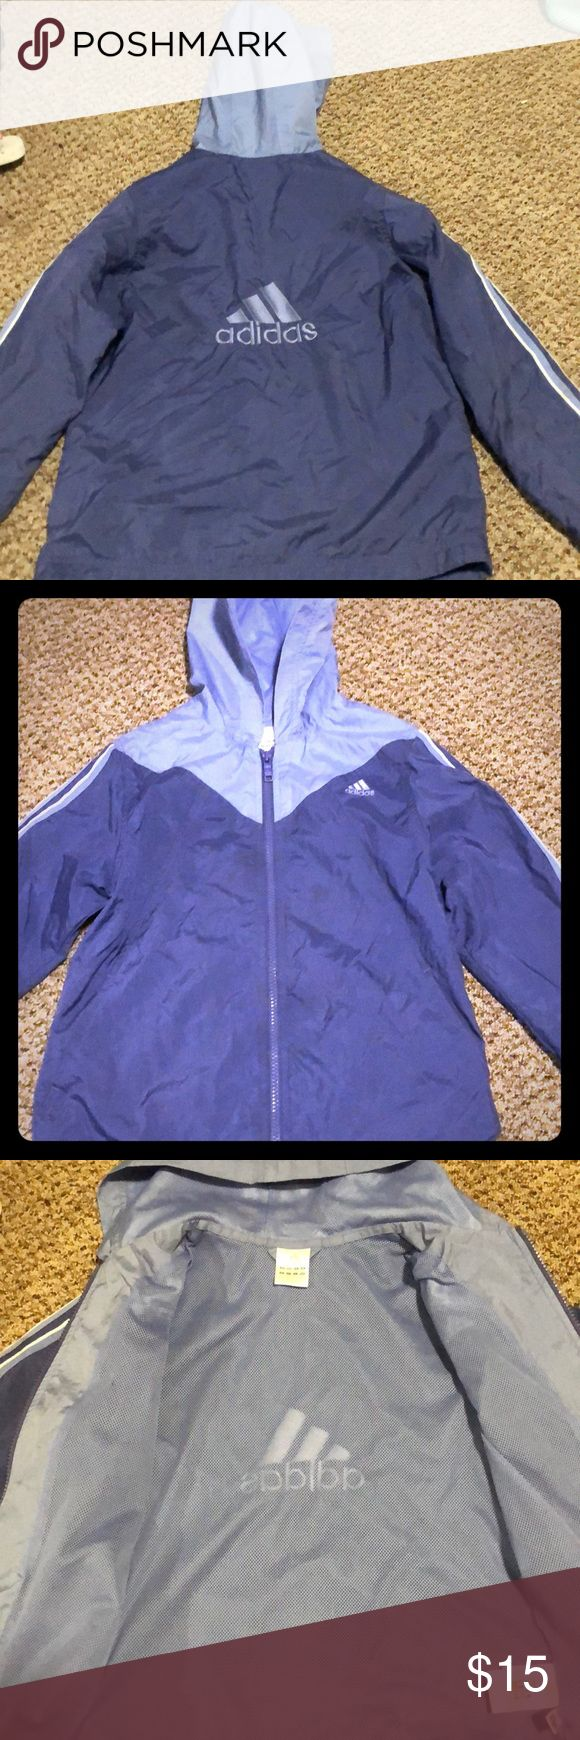 Adidas light jacket size 7/8 Adidas light jacket In great condition short of a few stains on it here and there. Smoke free home.. Adidas Jackets & Coats Raincoats